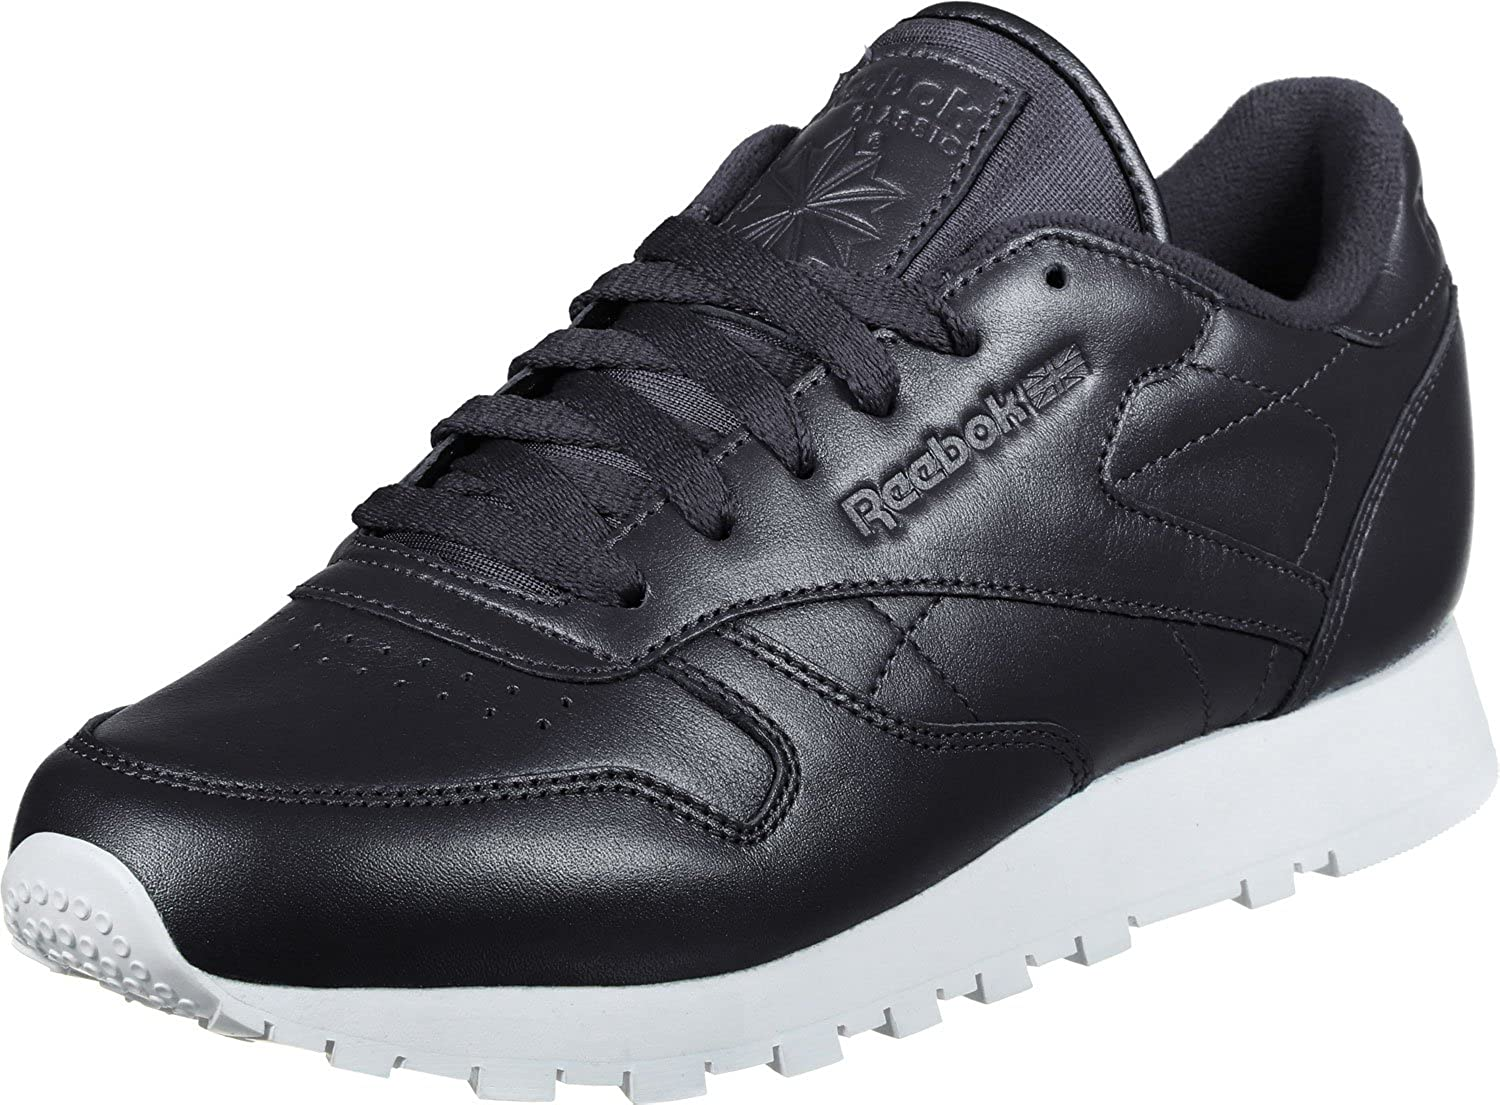 Reebok Classic Leather Pearlized Damen Turnschuhe Metallisch